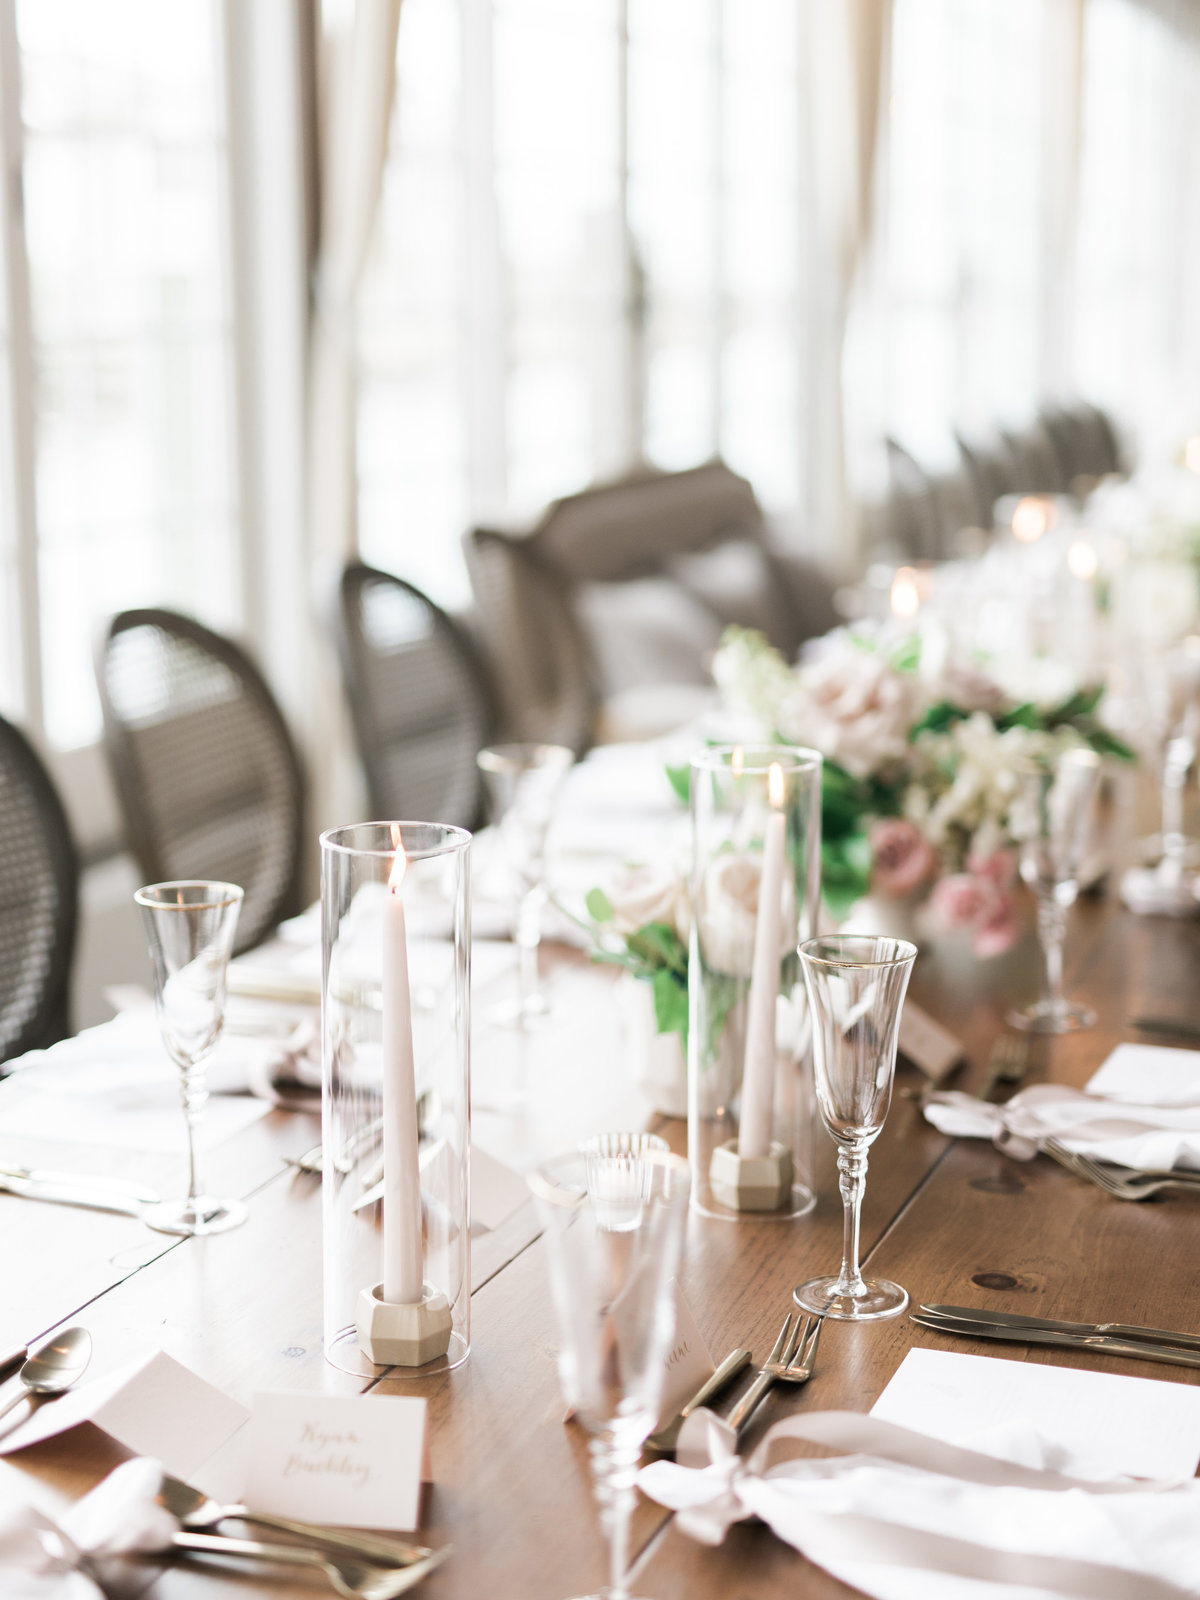 Head Table similar to the Kennedy wedding on Cape Cod